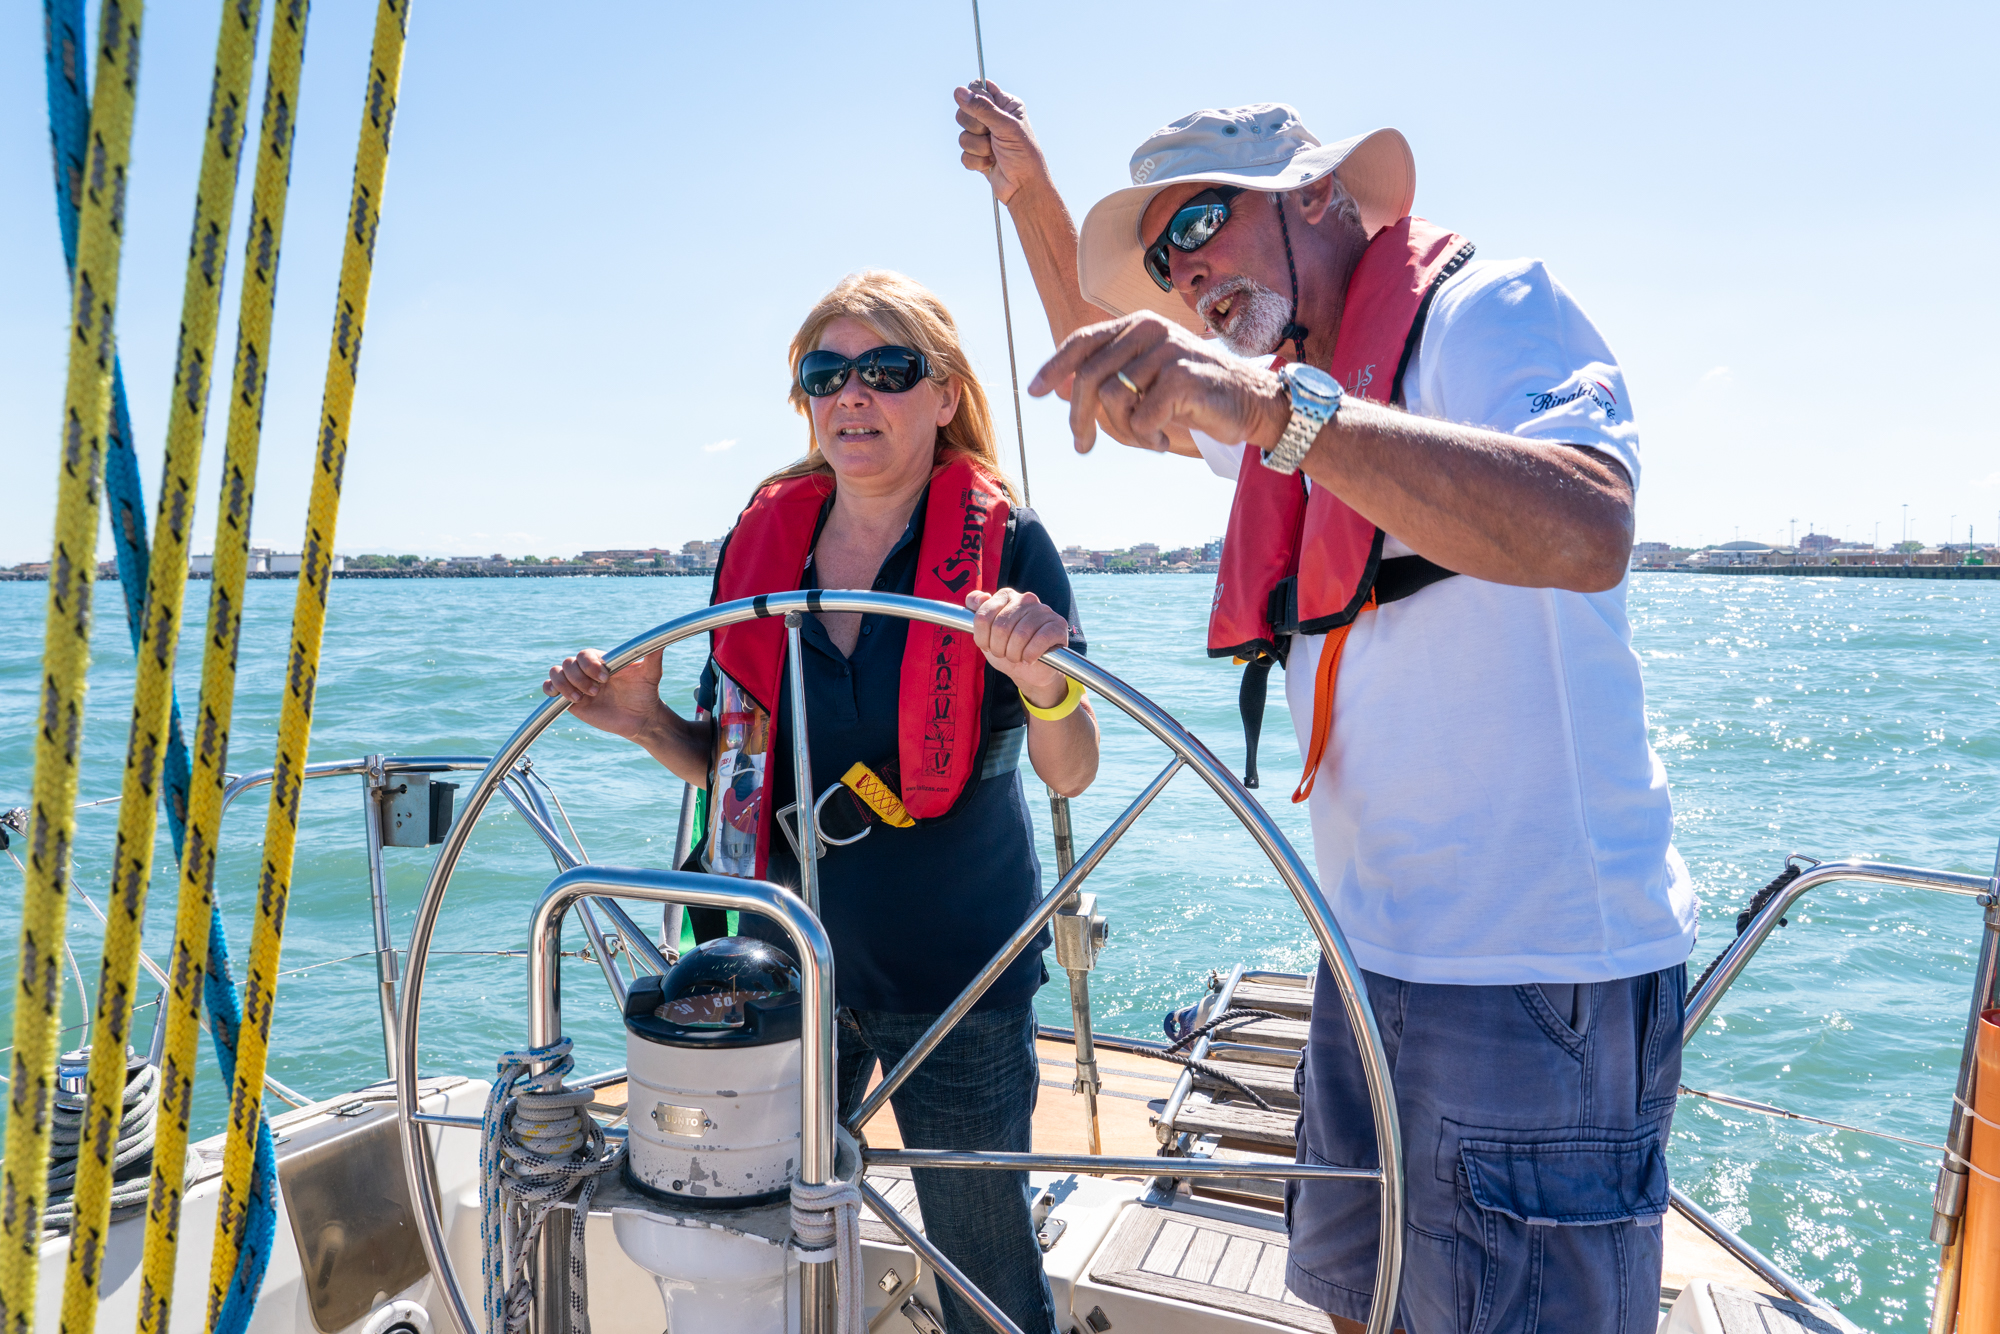 Patrizia Pilloni (left) steers the sailboat through Fiumicino Harbor in Italy as her instructor, Claudio Rinaldini, gives instruction.